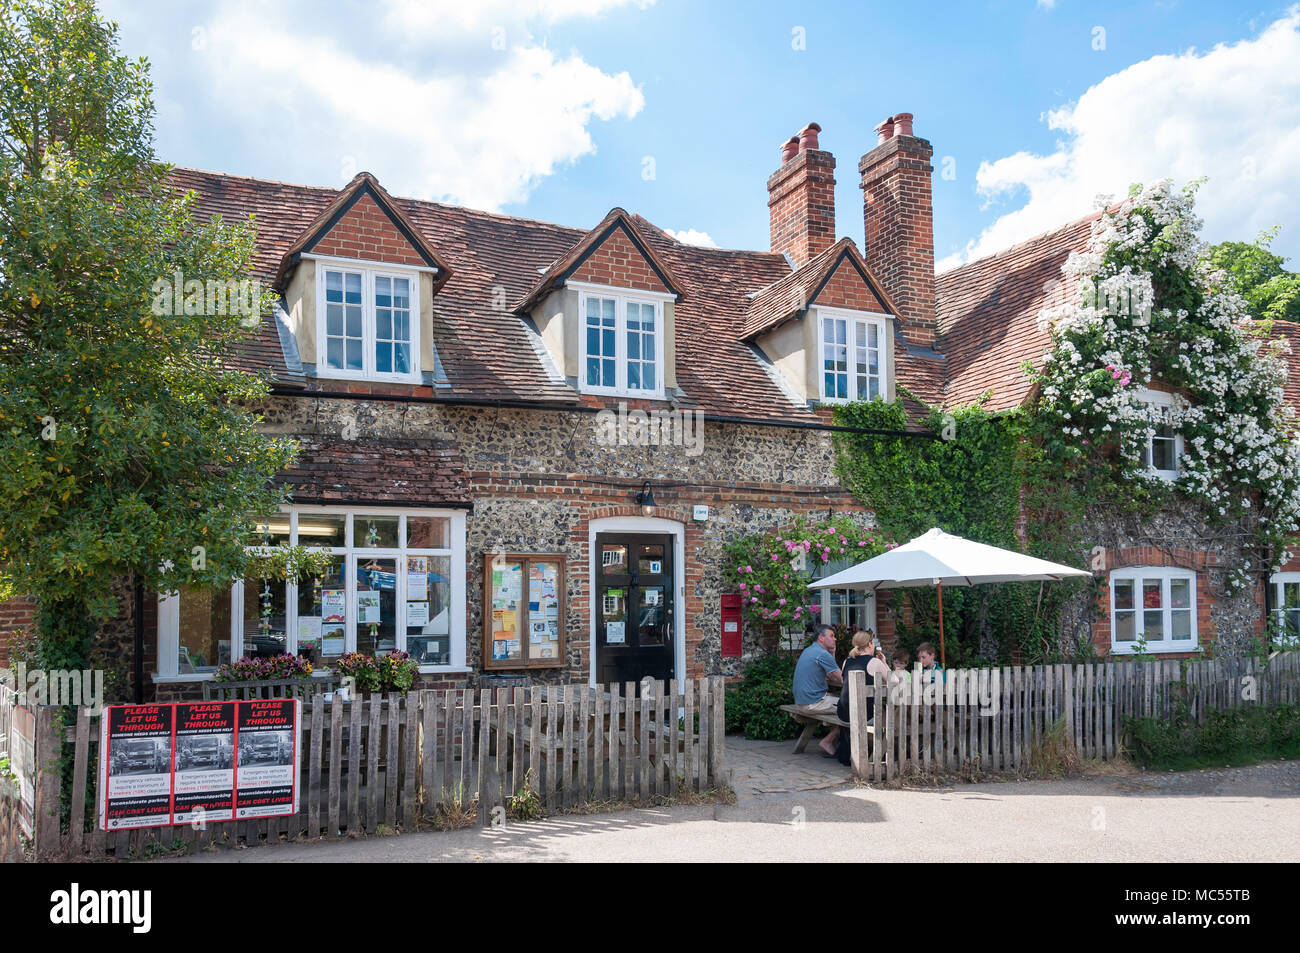 Hambleden Village Store (Old Post Office), Pheasant's Hill Frieth, Hambleden, Buckinghamshire, England, United Kingdom - Stock Image